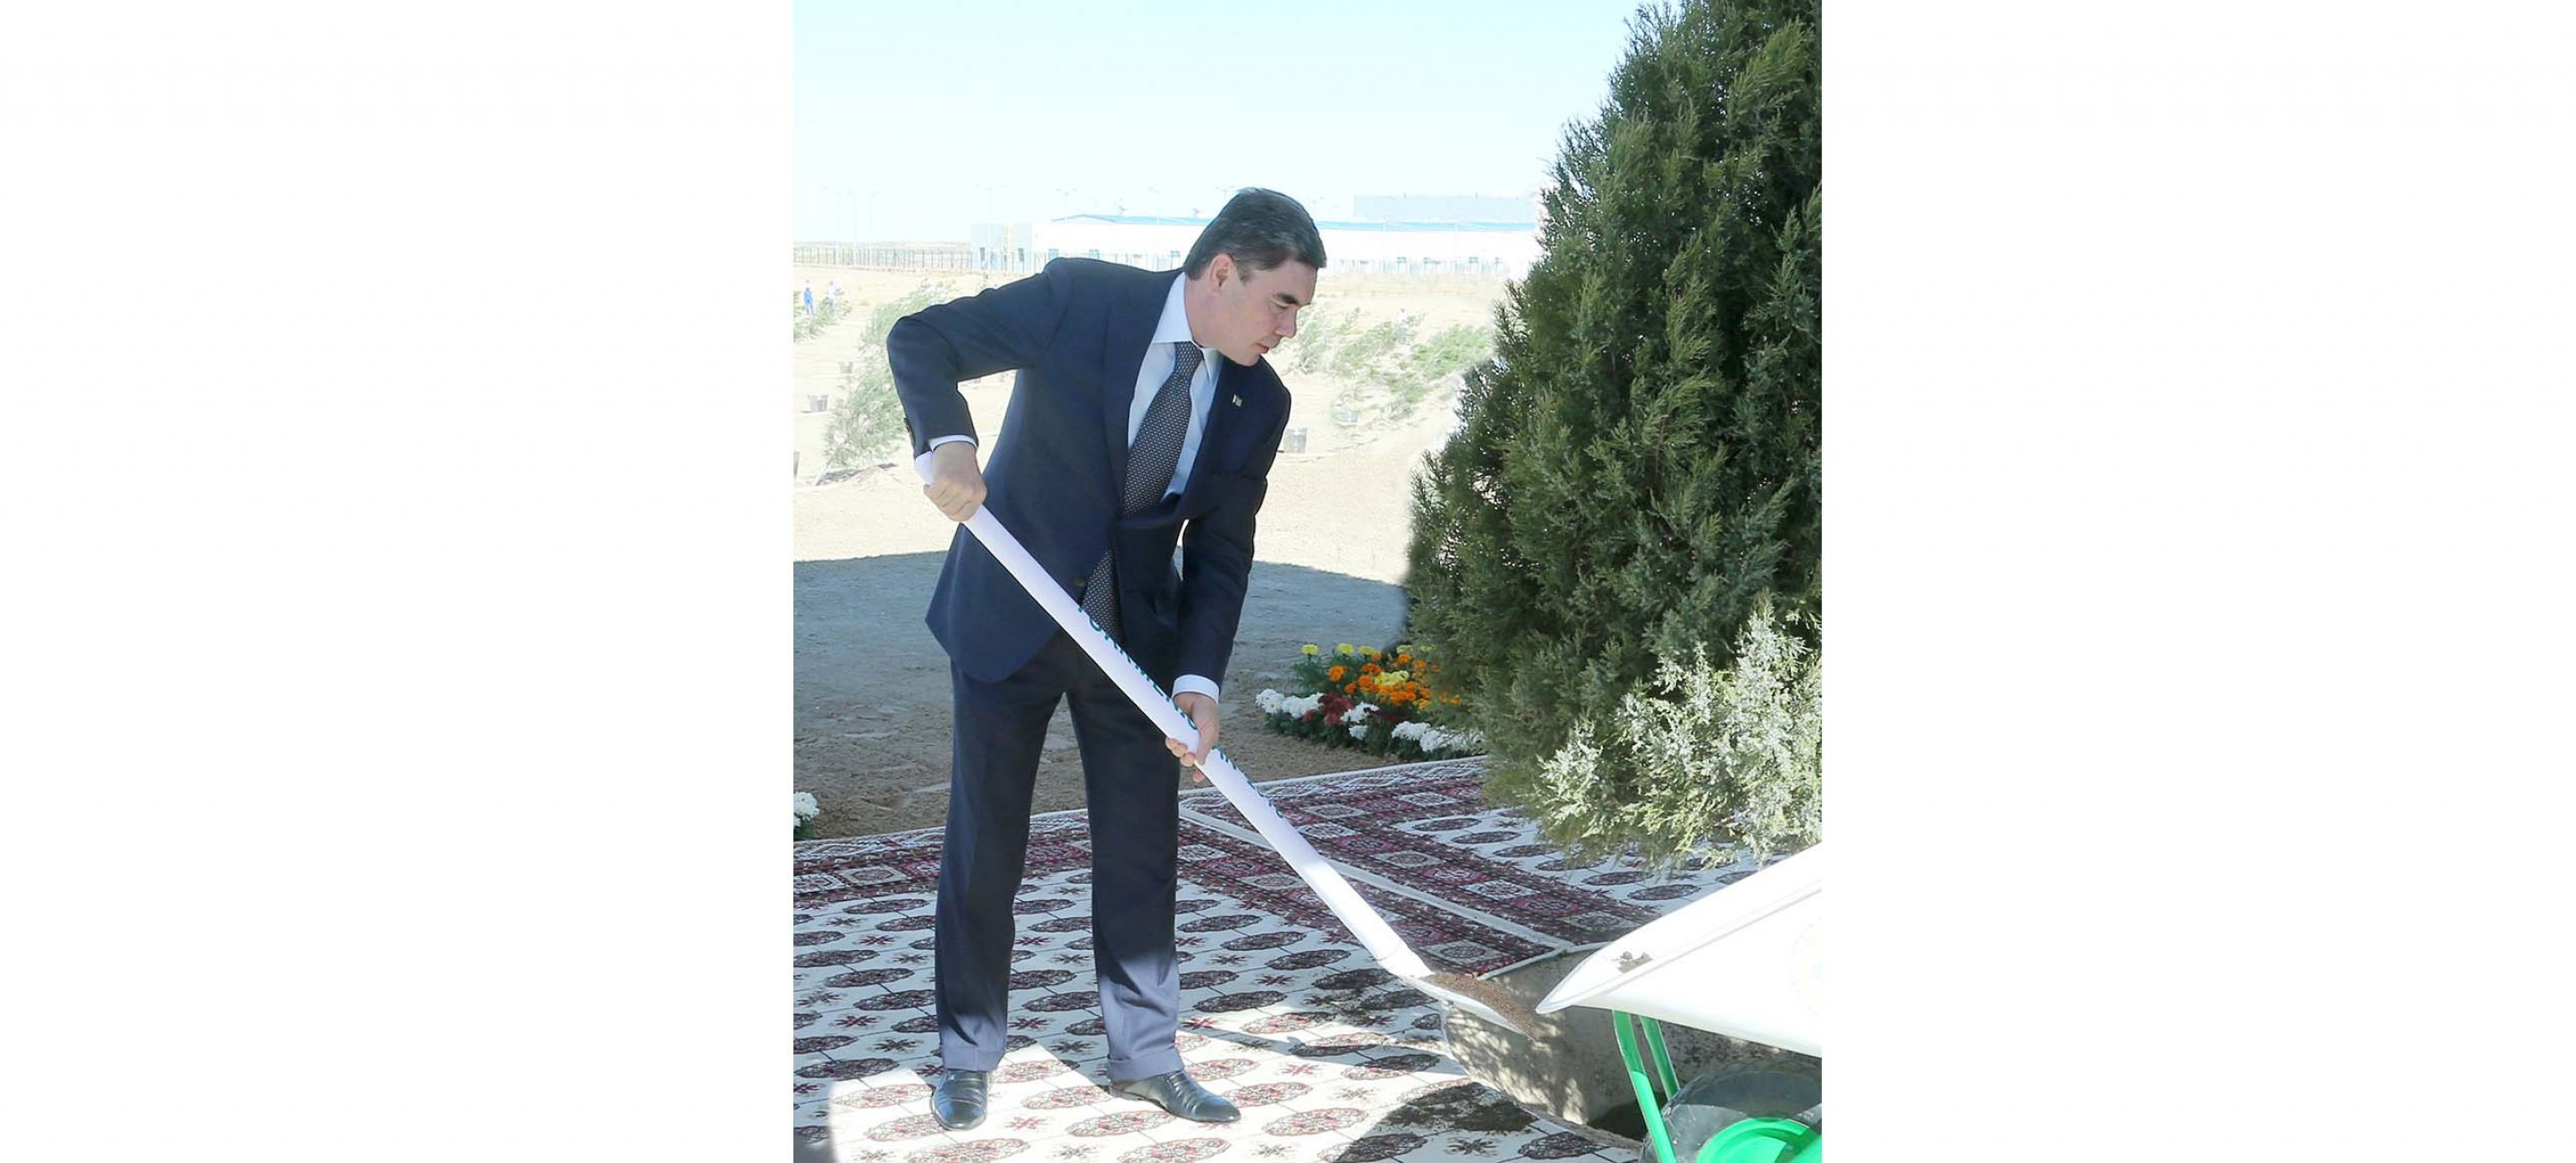 PRESIDENT OF TURKMENISTAN PARTICIPATED IN LANDSCAPING CAMPAIGN IN KIYANLY